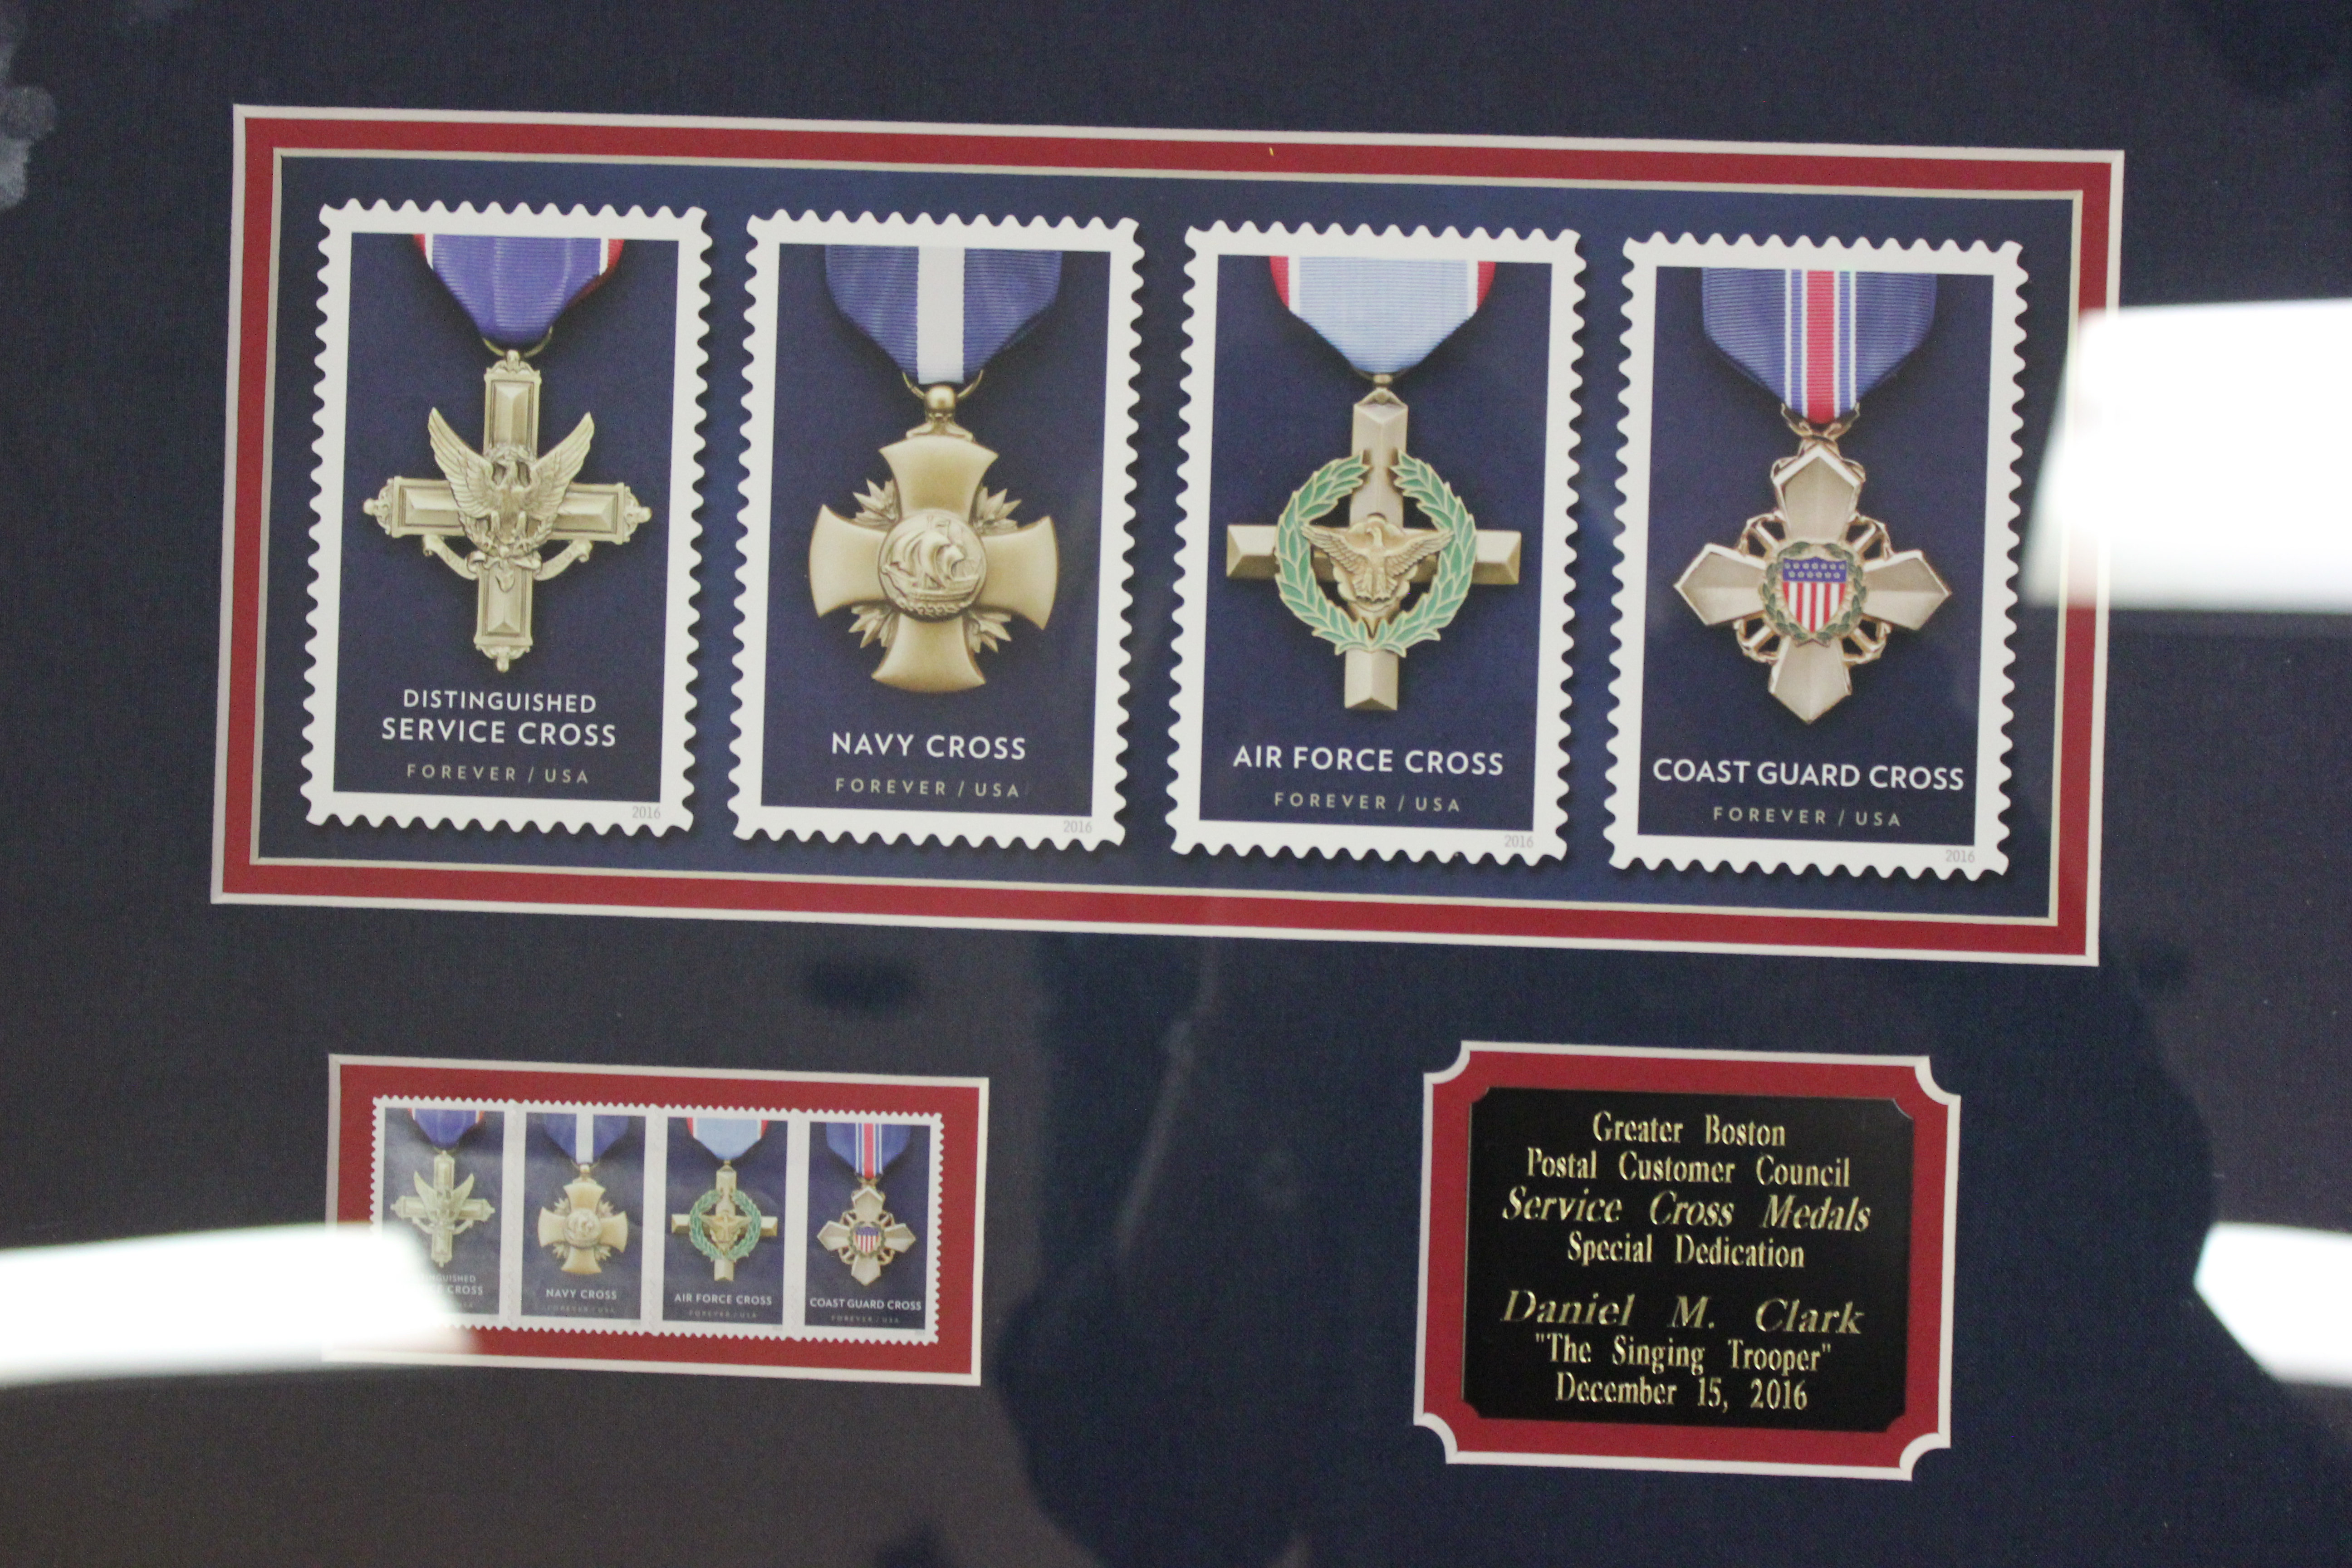 Greater Boston Postal Customer Council - Military Stamp